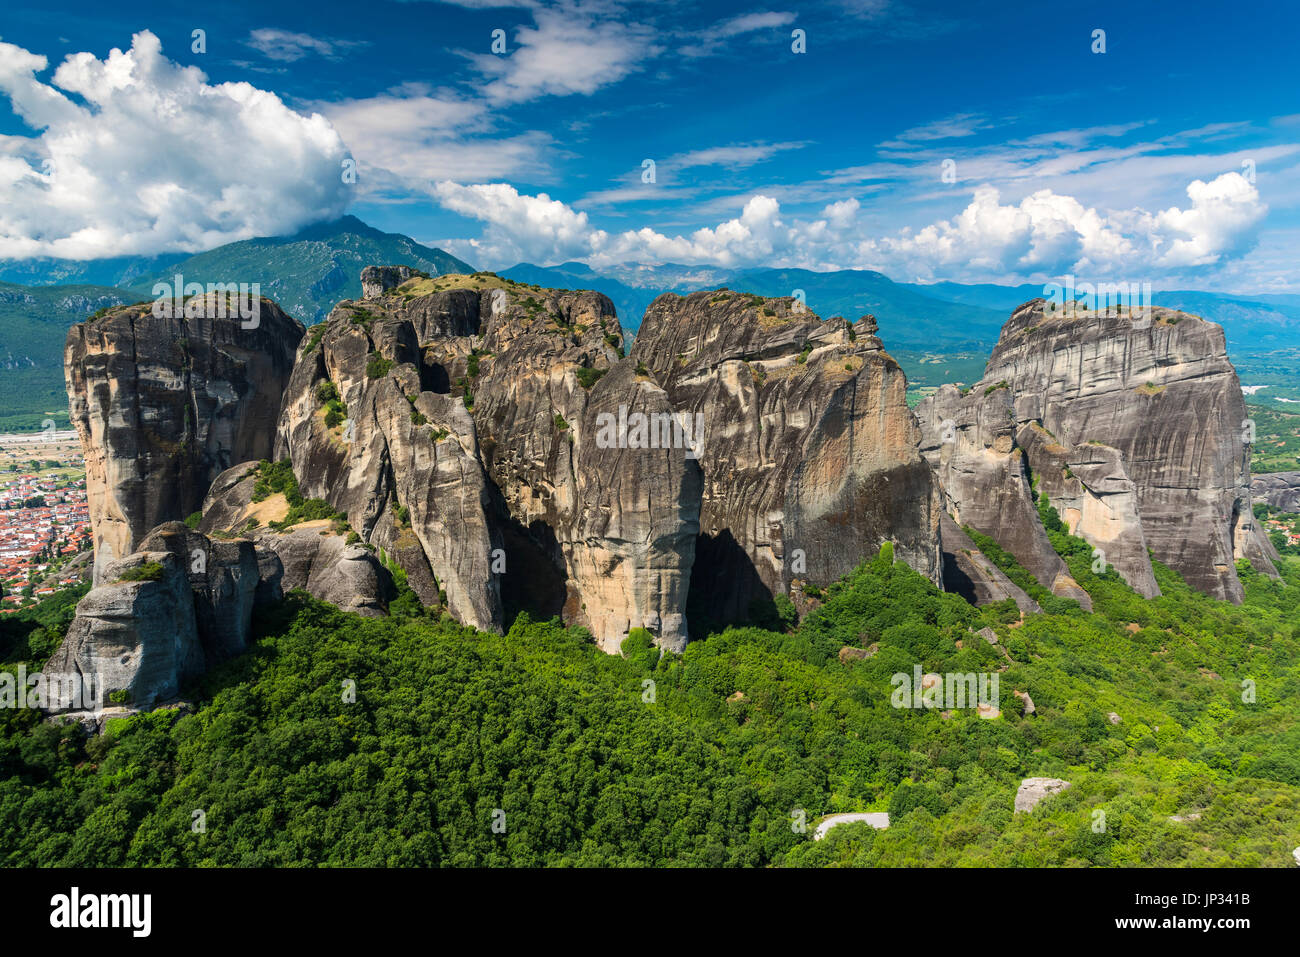 The spectacular massive rocky pinnacles of Meteora, Thessaly, Greece Stock Photo